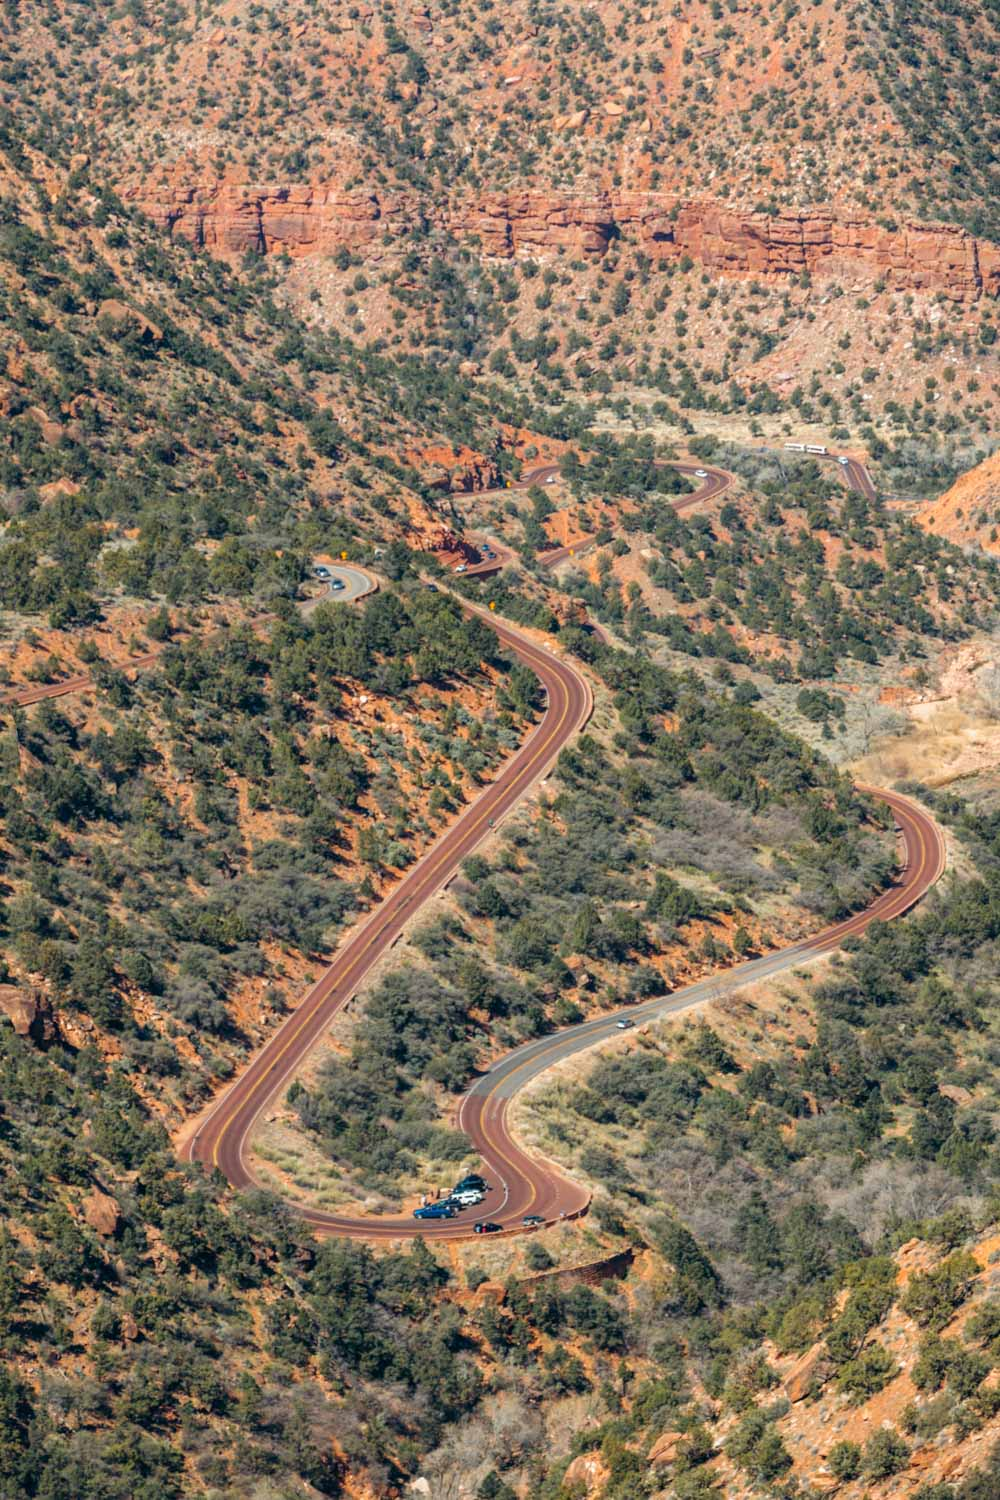 Hike Zion Canyon Overlook Trail - Roads and Destinations